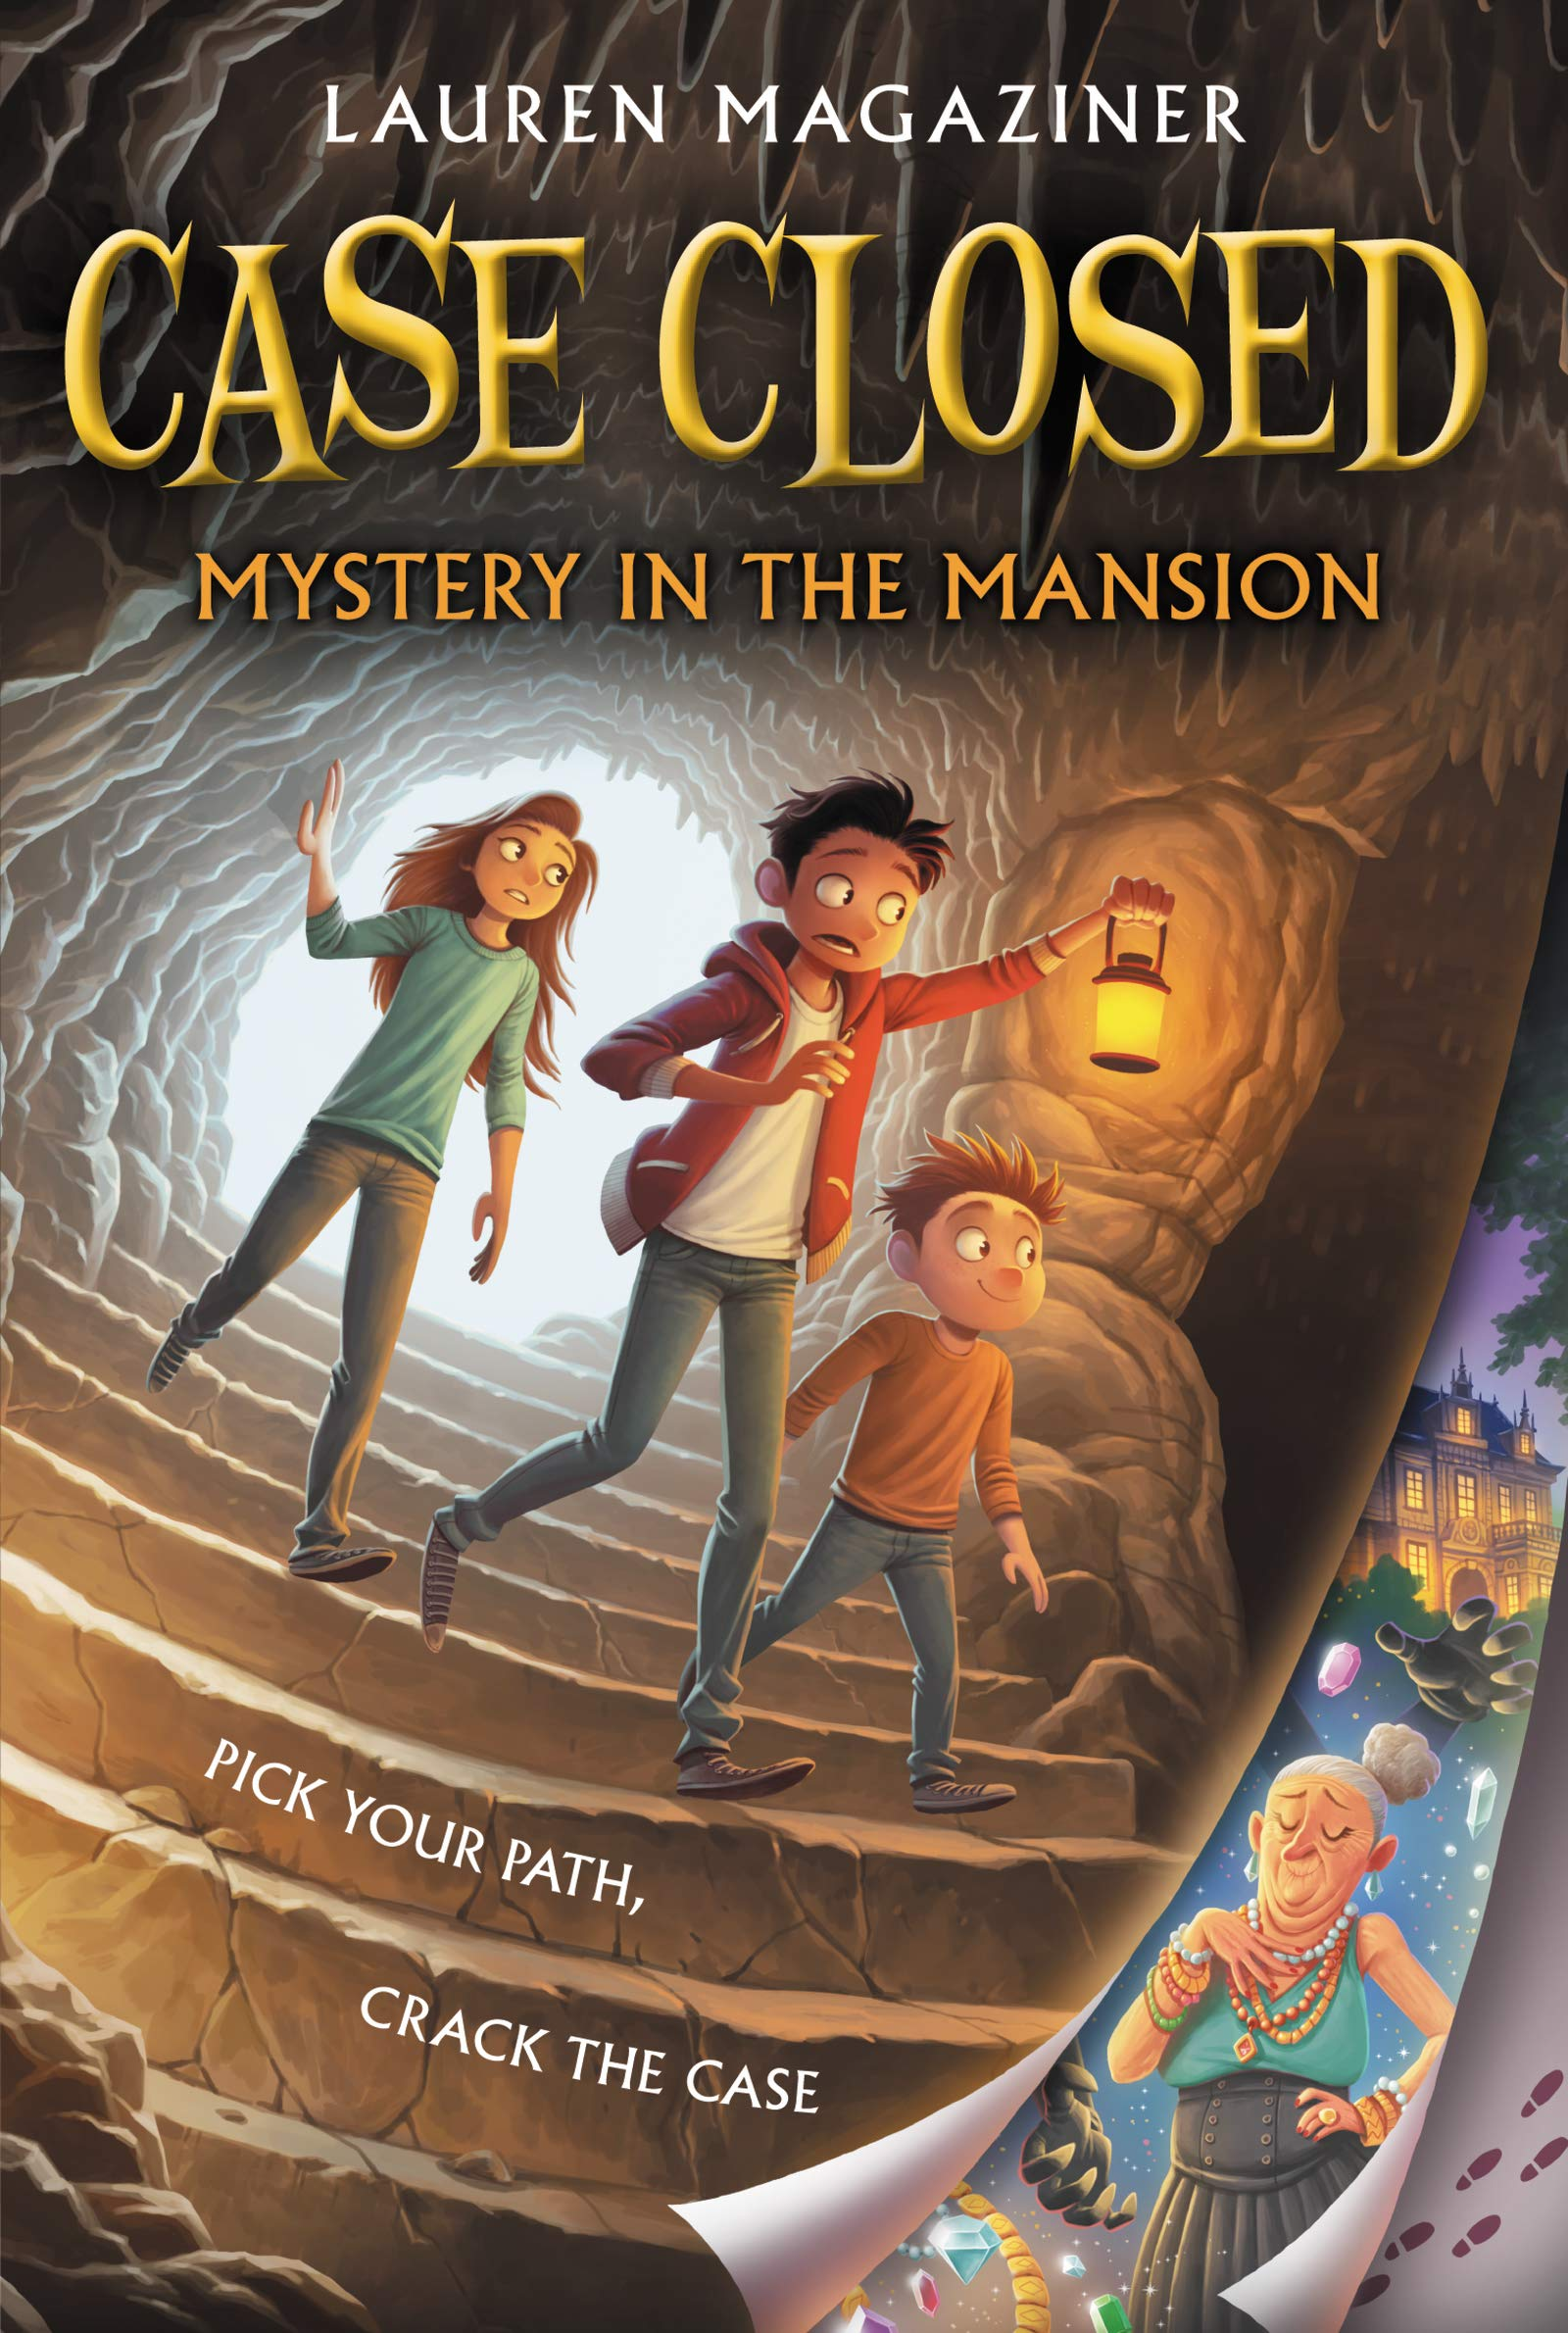 Case Closed #1: Mystery in the Mansion: Magaziner, Lauren: 9780062676283:  Amazon.com: Books